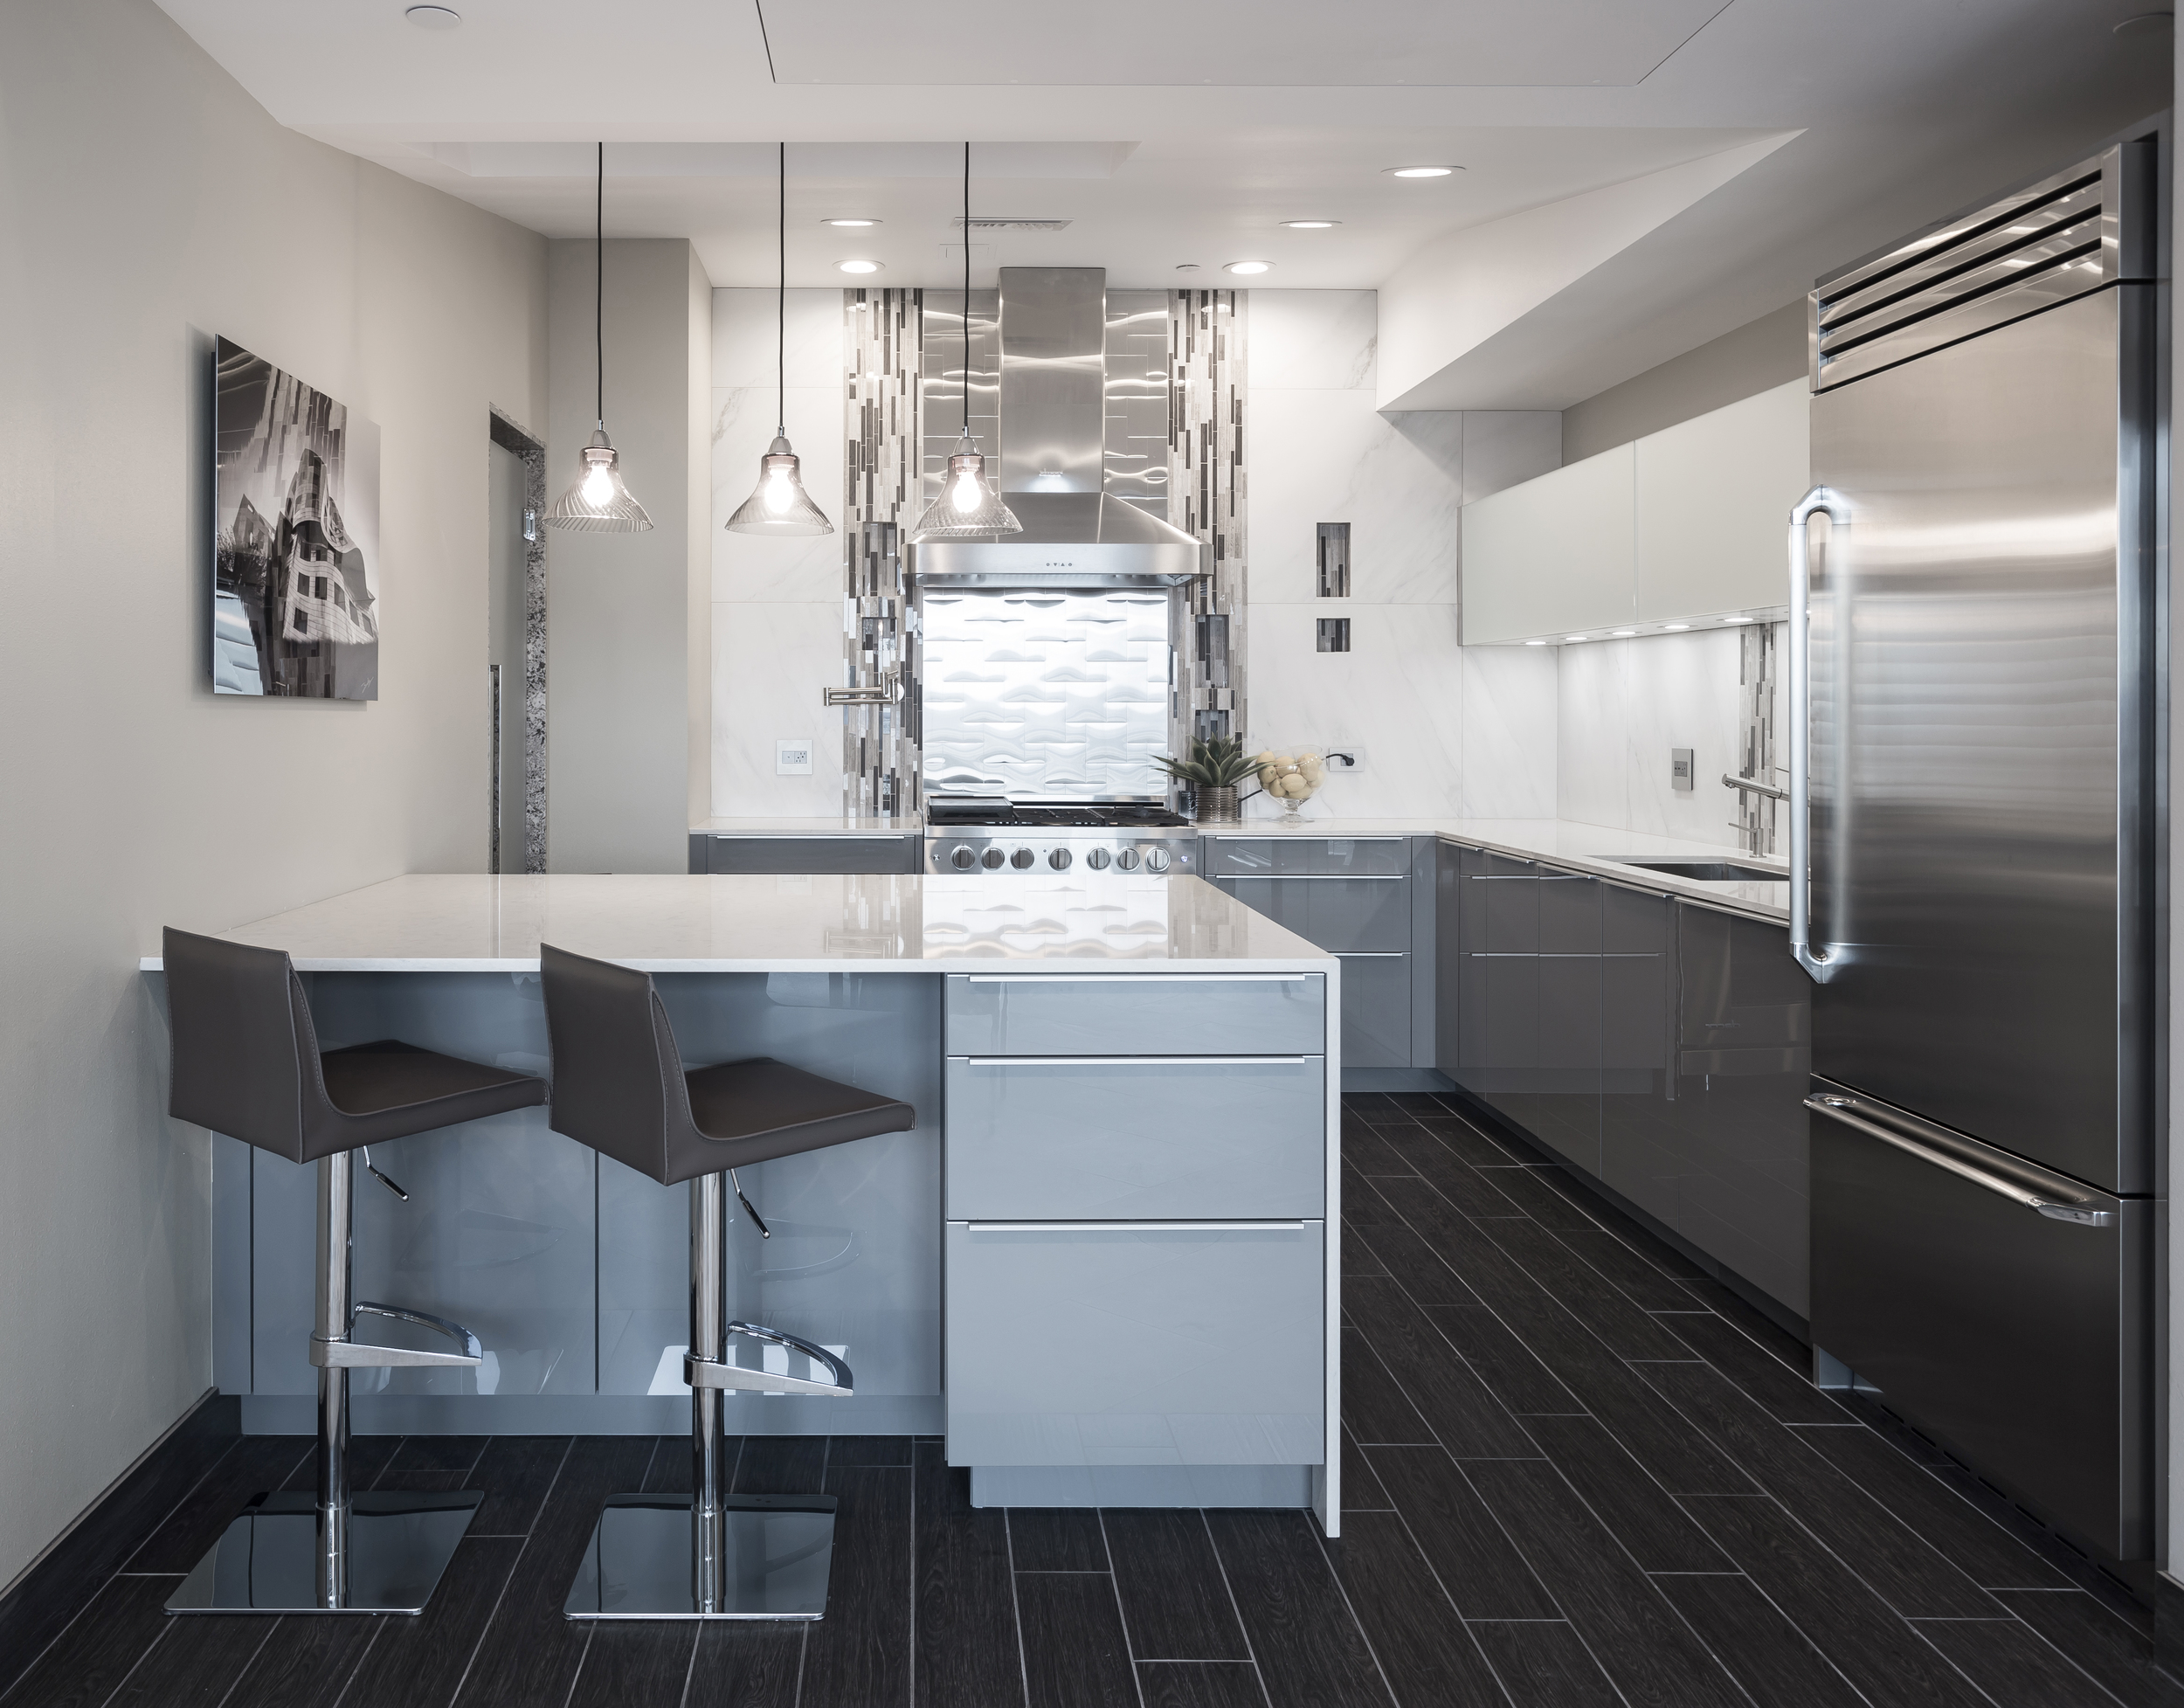 Best of #KBIS2015: Must-Have: The Detailed Perfection Of A Poggenpohl Kitchen | Carla Aston reporting from Modenus' #BlogTourVegas | Image via: Poggenpohl.com